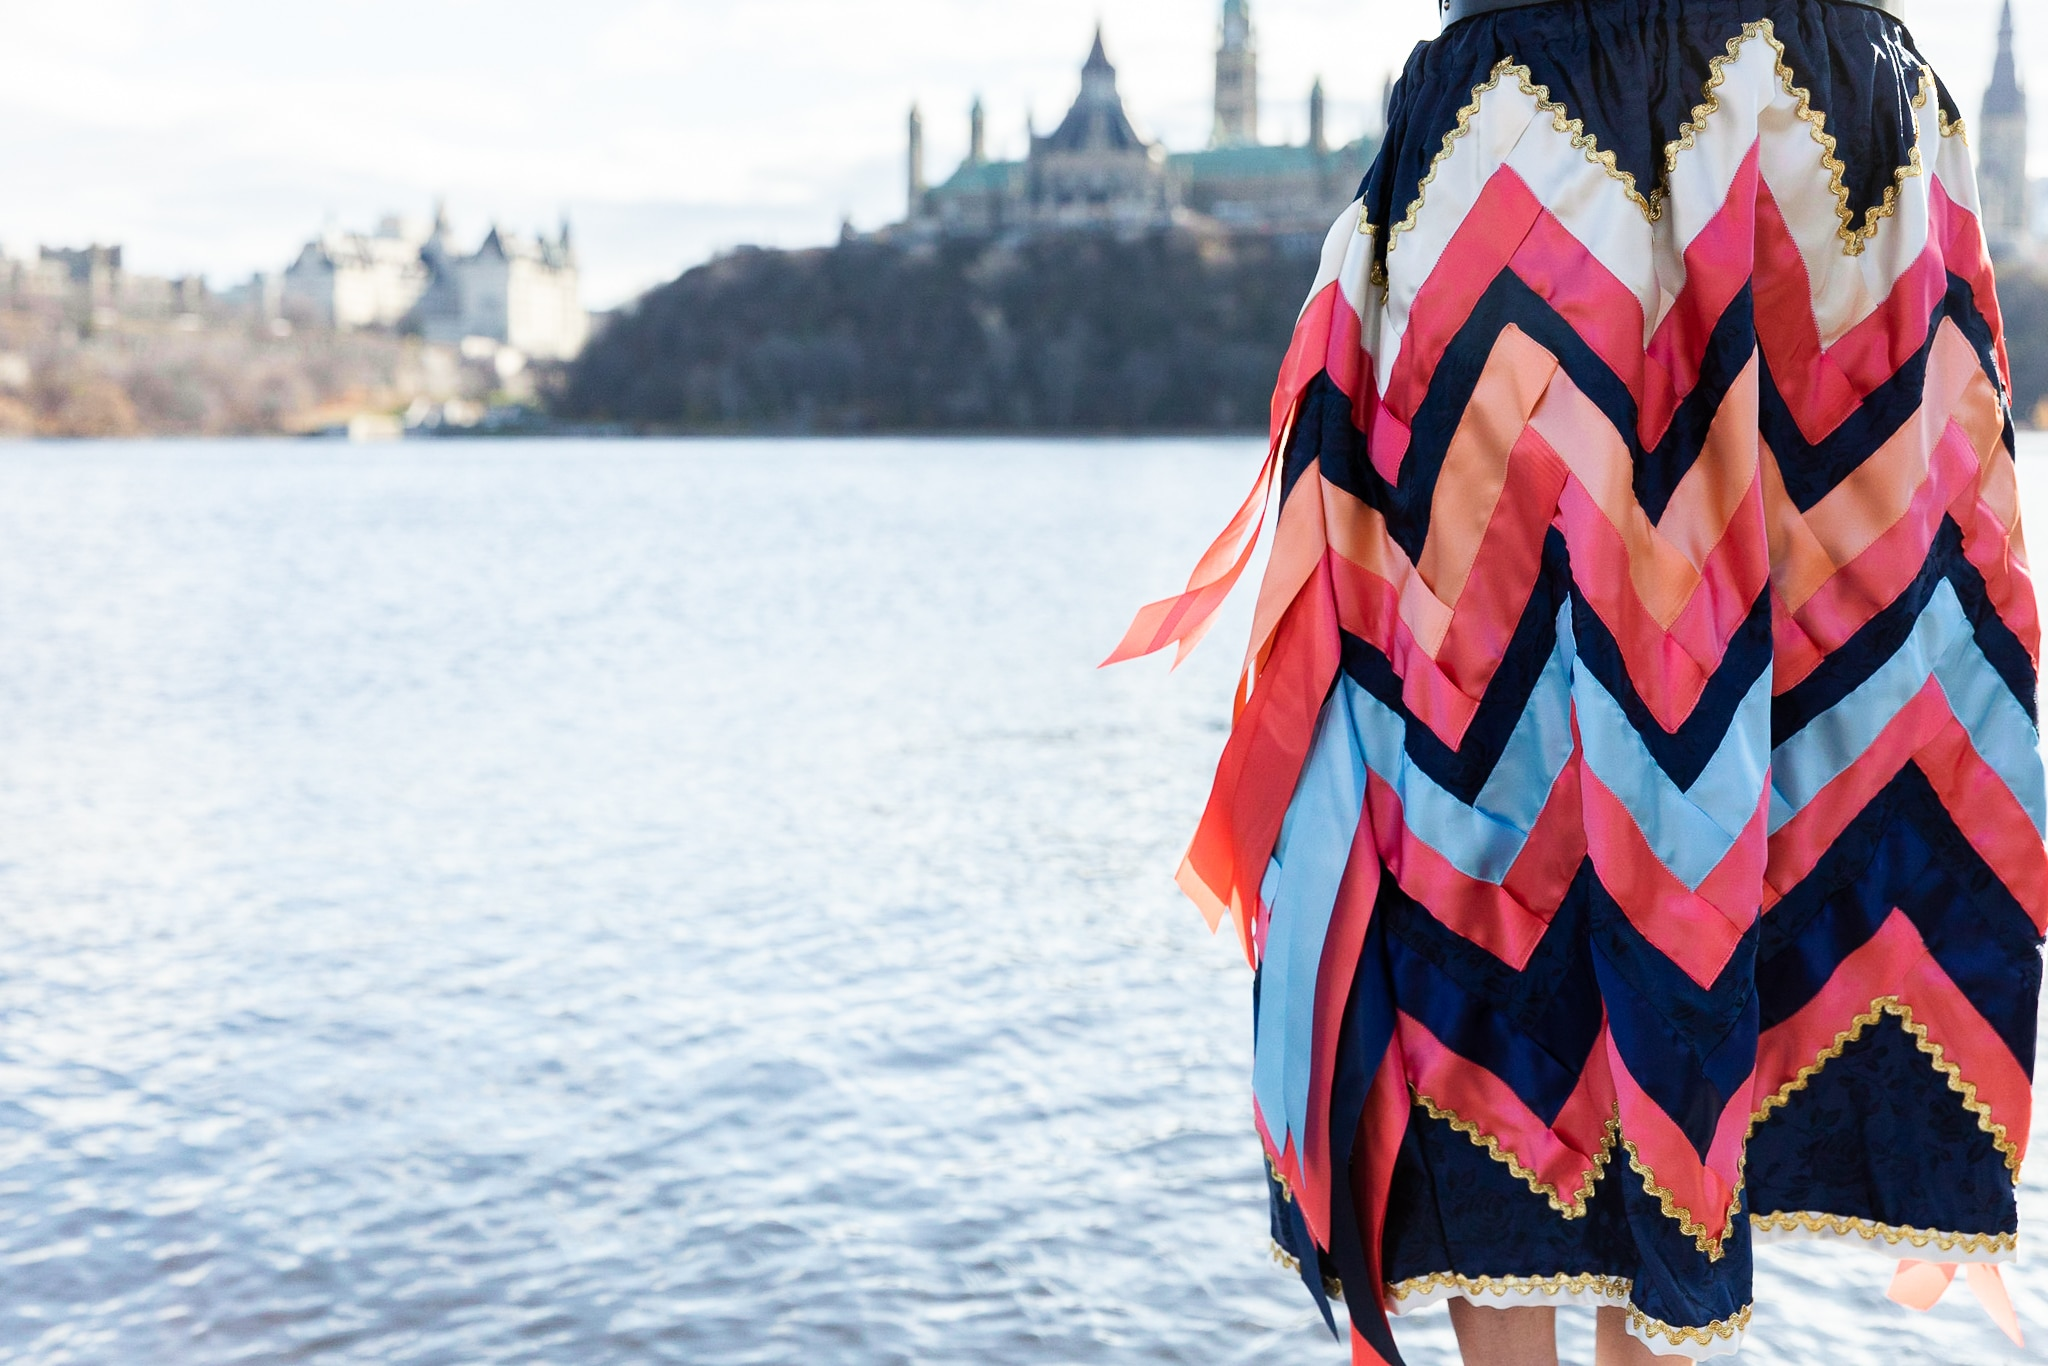 Autumn Peltier in her ribbon skirt on the Ottawa River, with the Canadian Parliment building in the background.